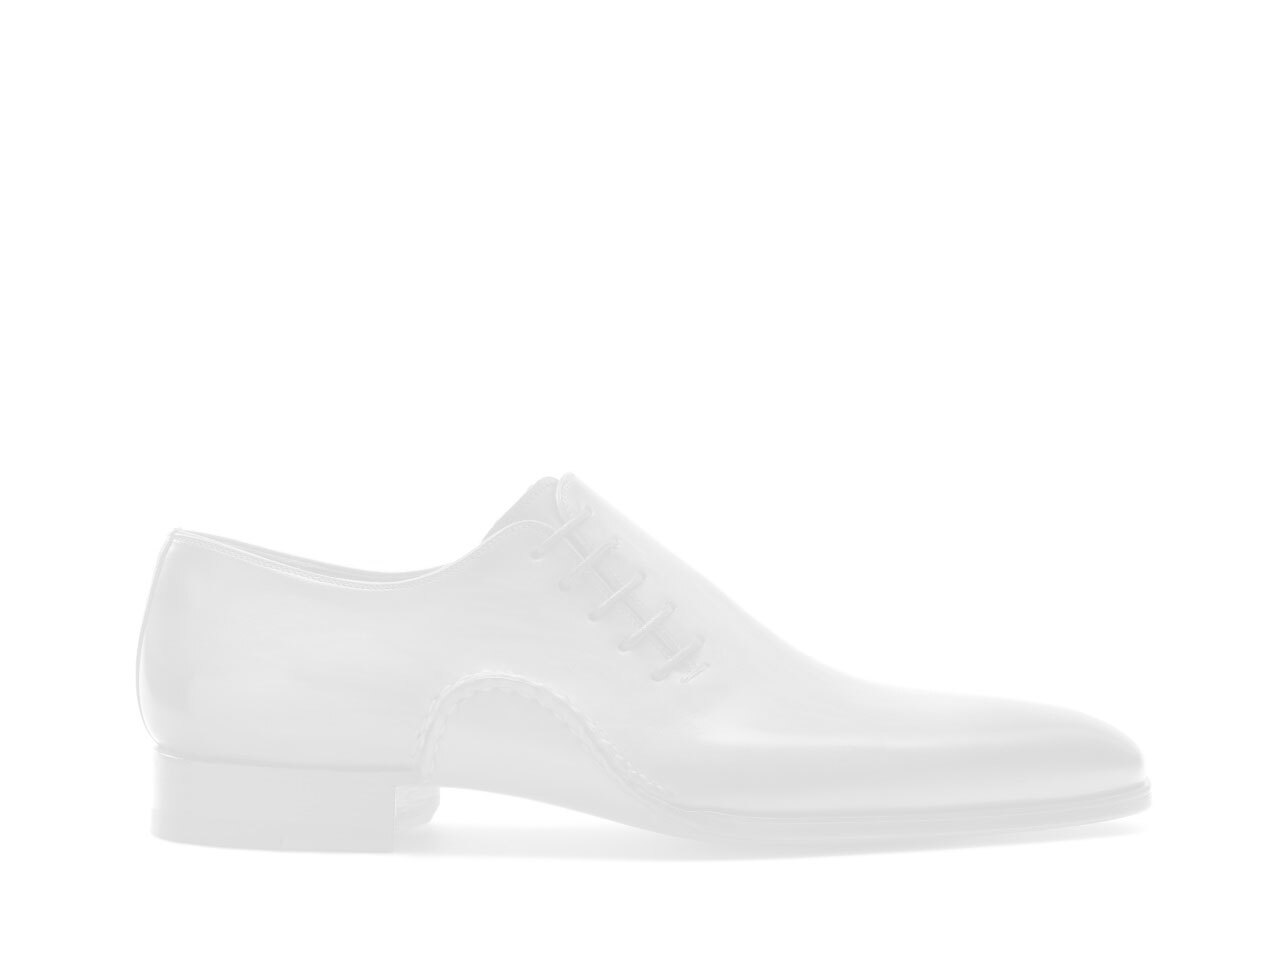 Side view of the Magnanni Ryder Tabaco Men's Oxford Shoes